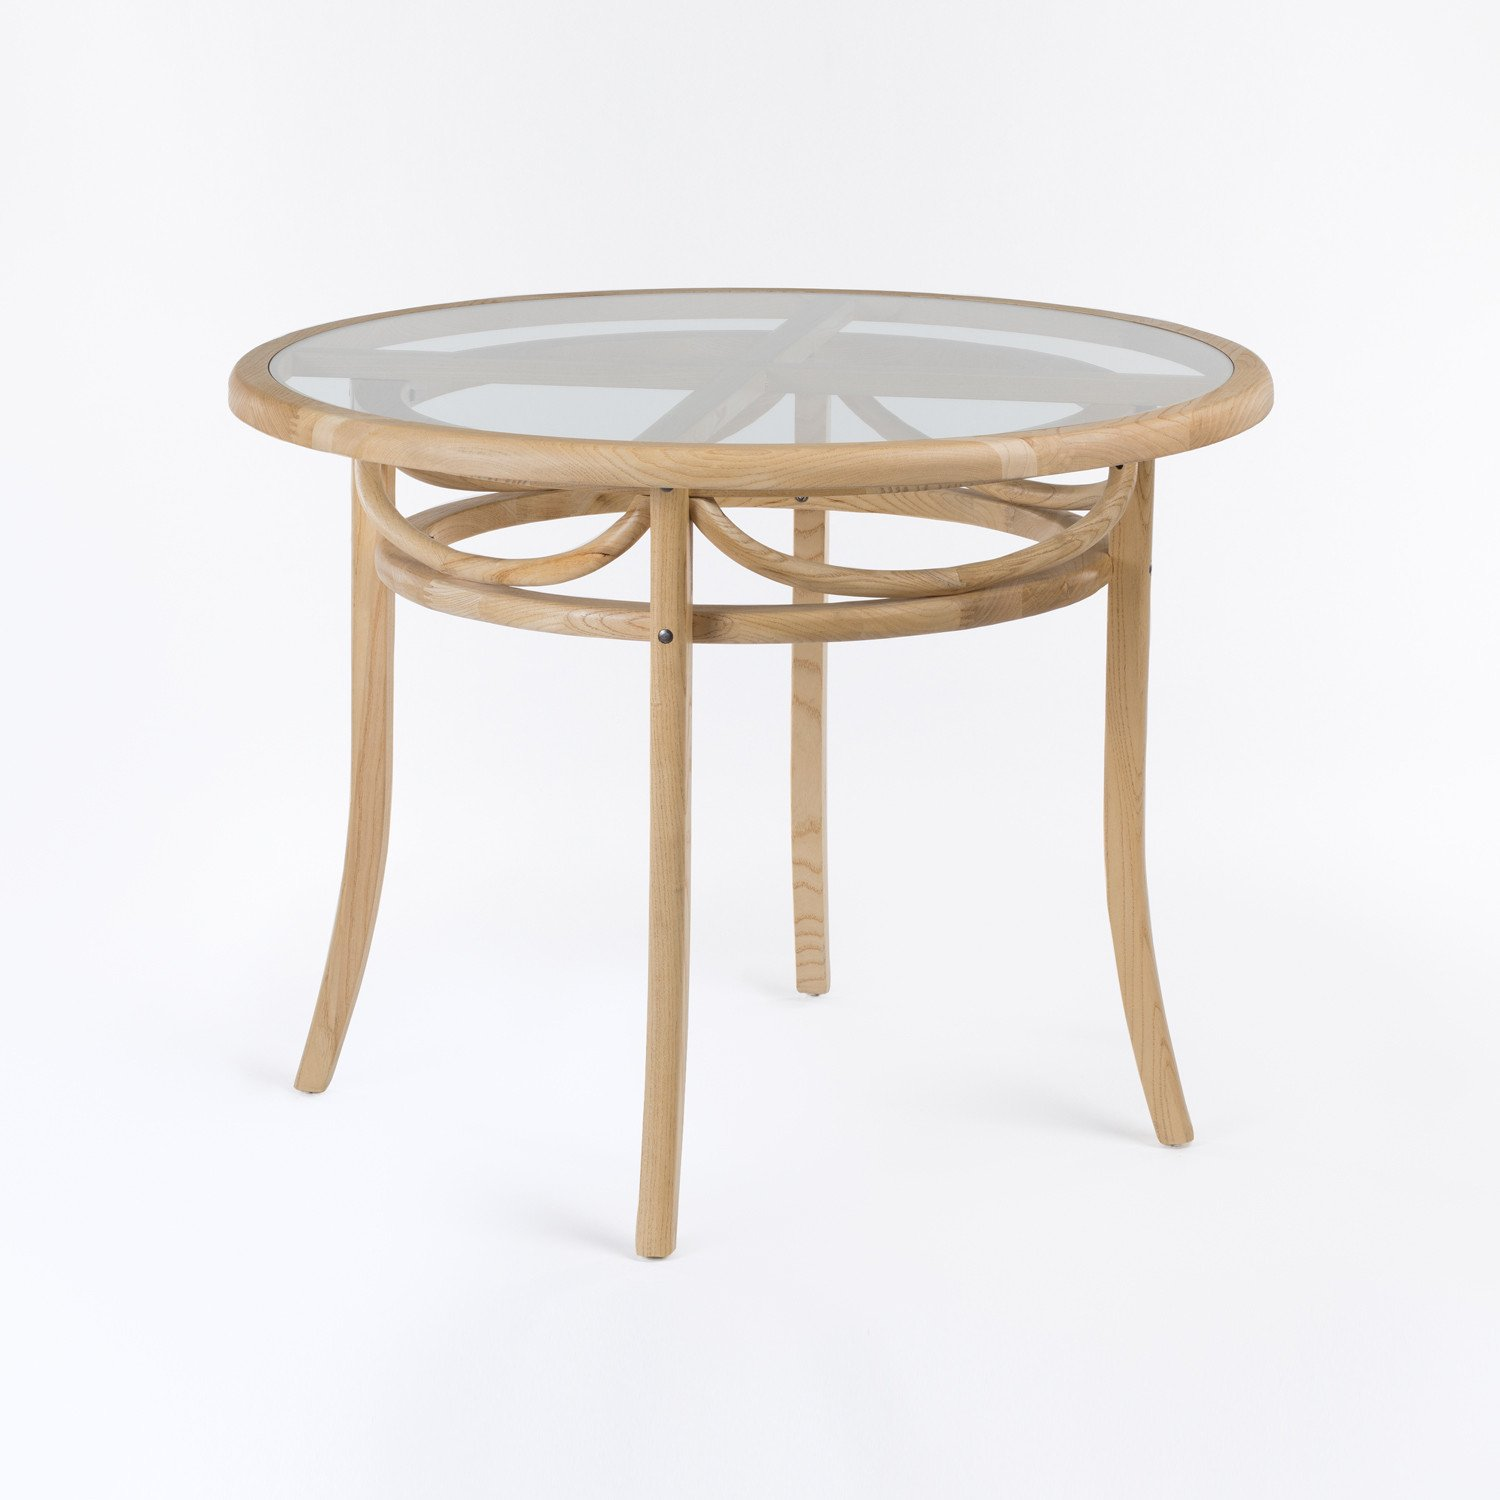 Thon Wood Table, gallery image 1